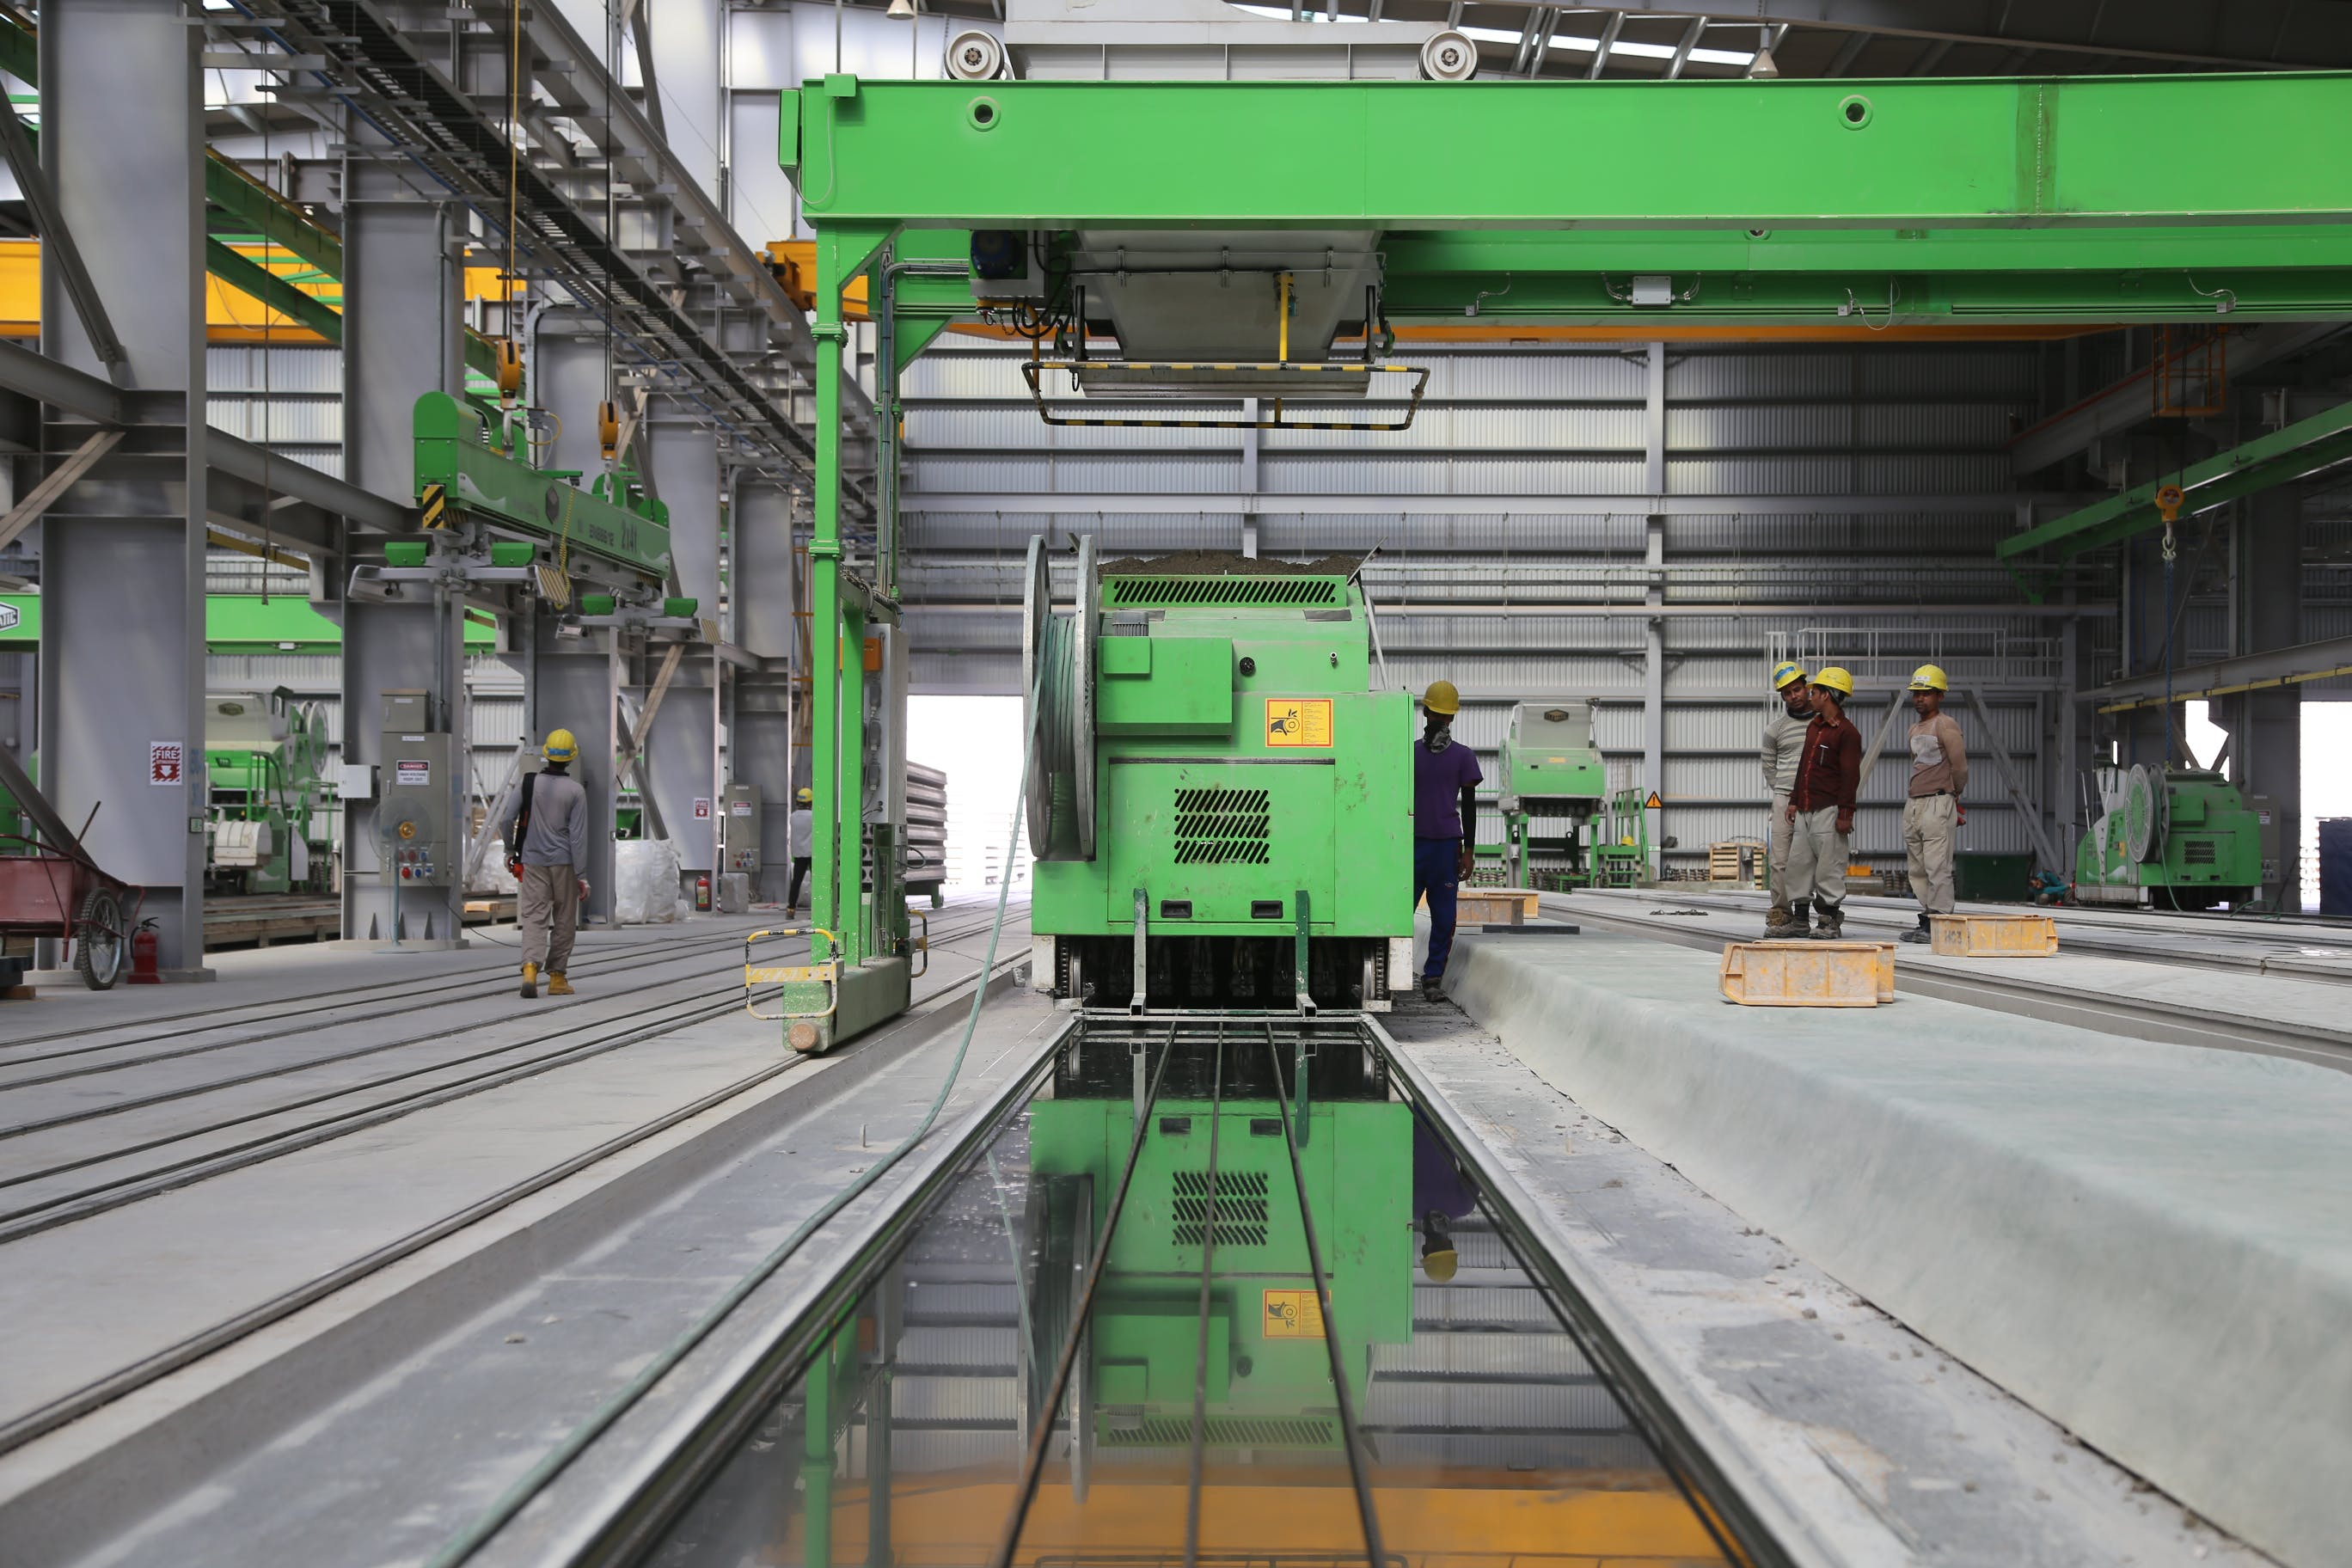 People Stands Near Green Metal Industrial Machine